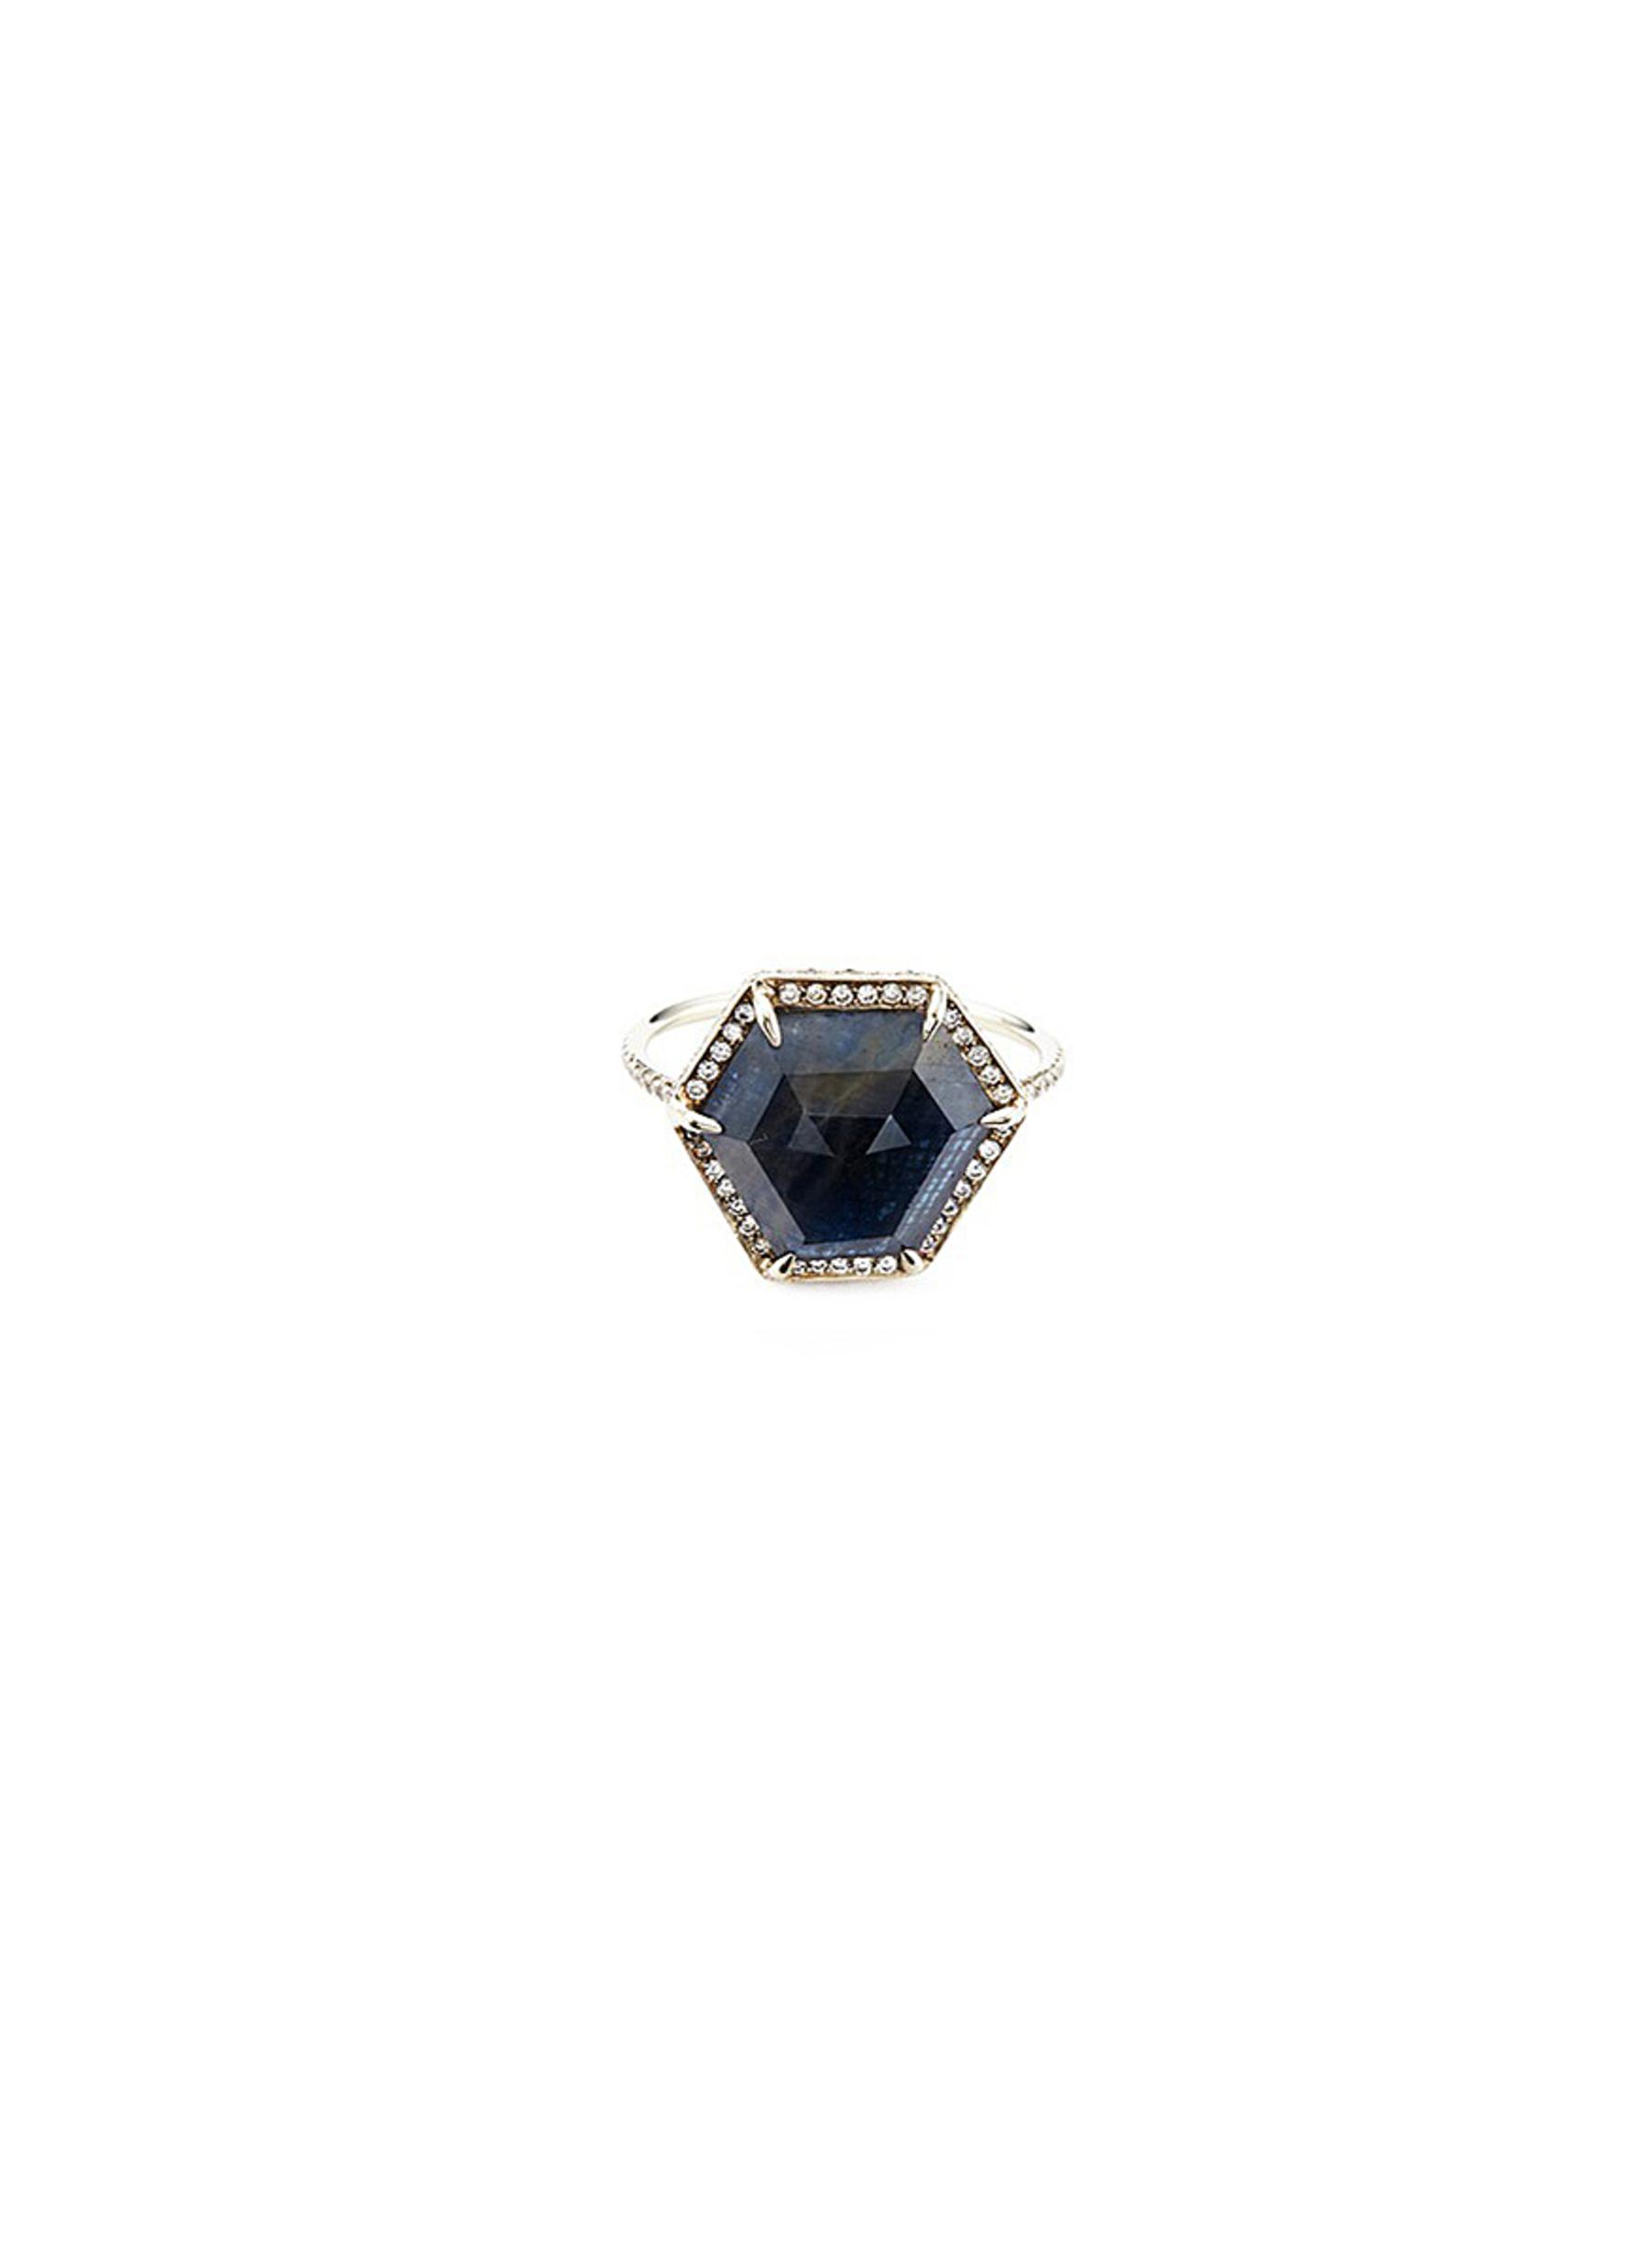 MONIQUE PÉAN 'Atelier' Sapphire18K Recycled White Gold Ring